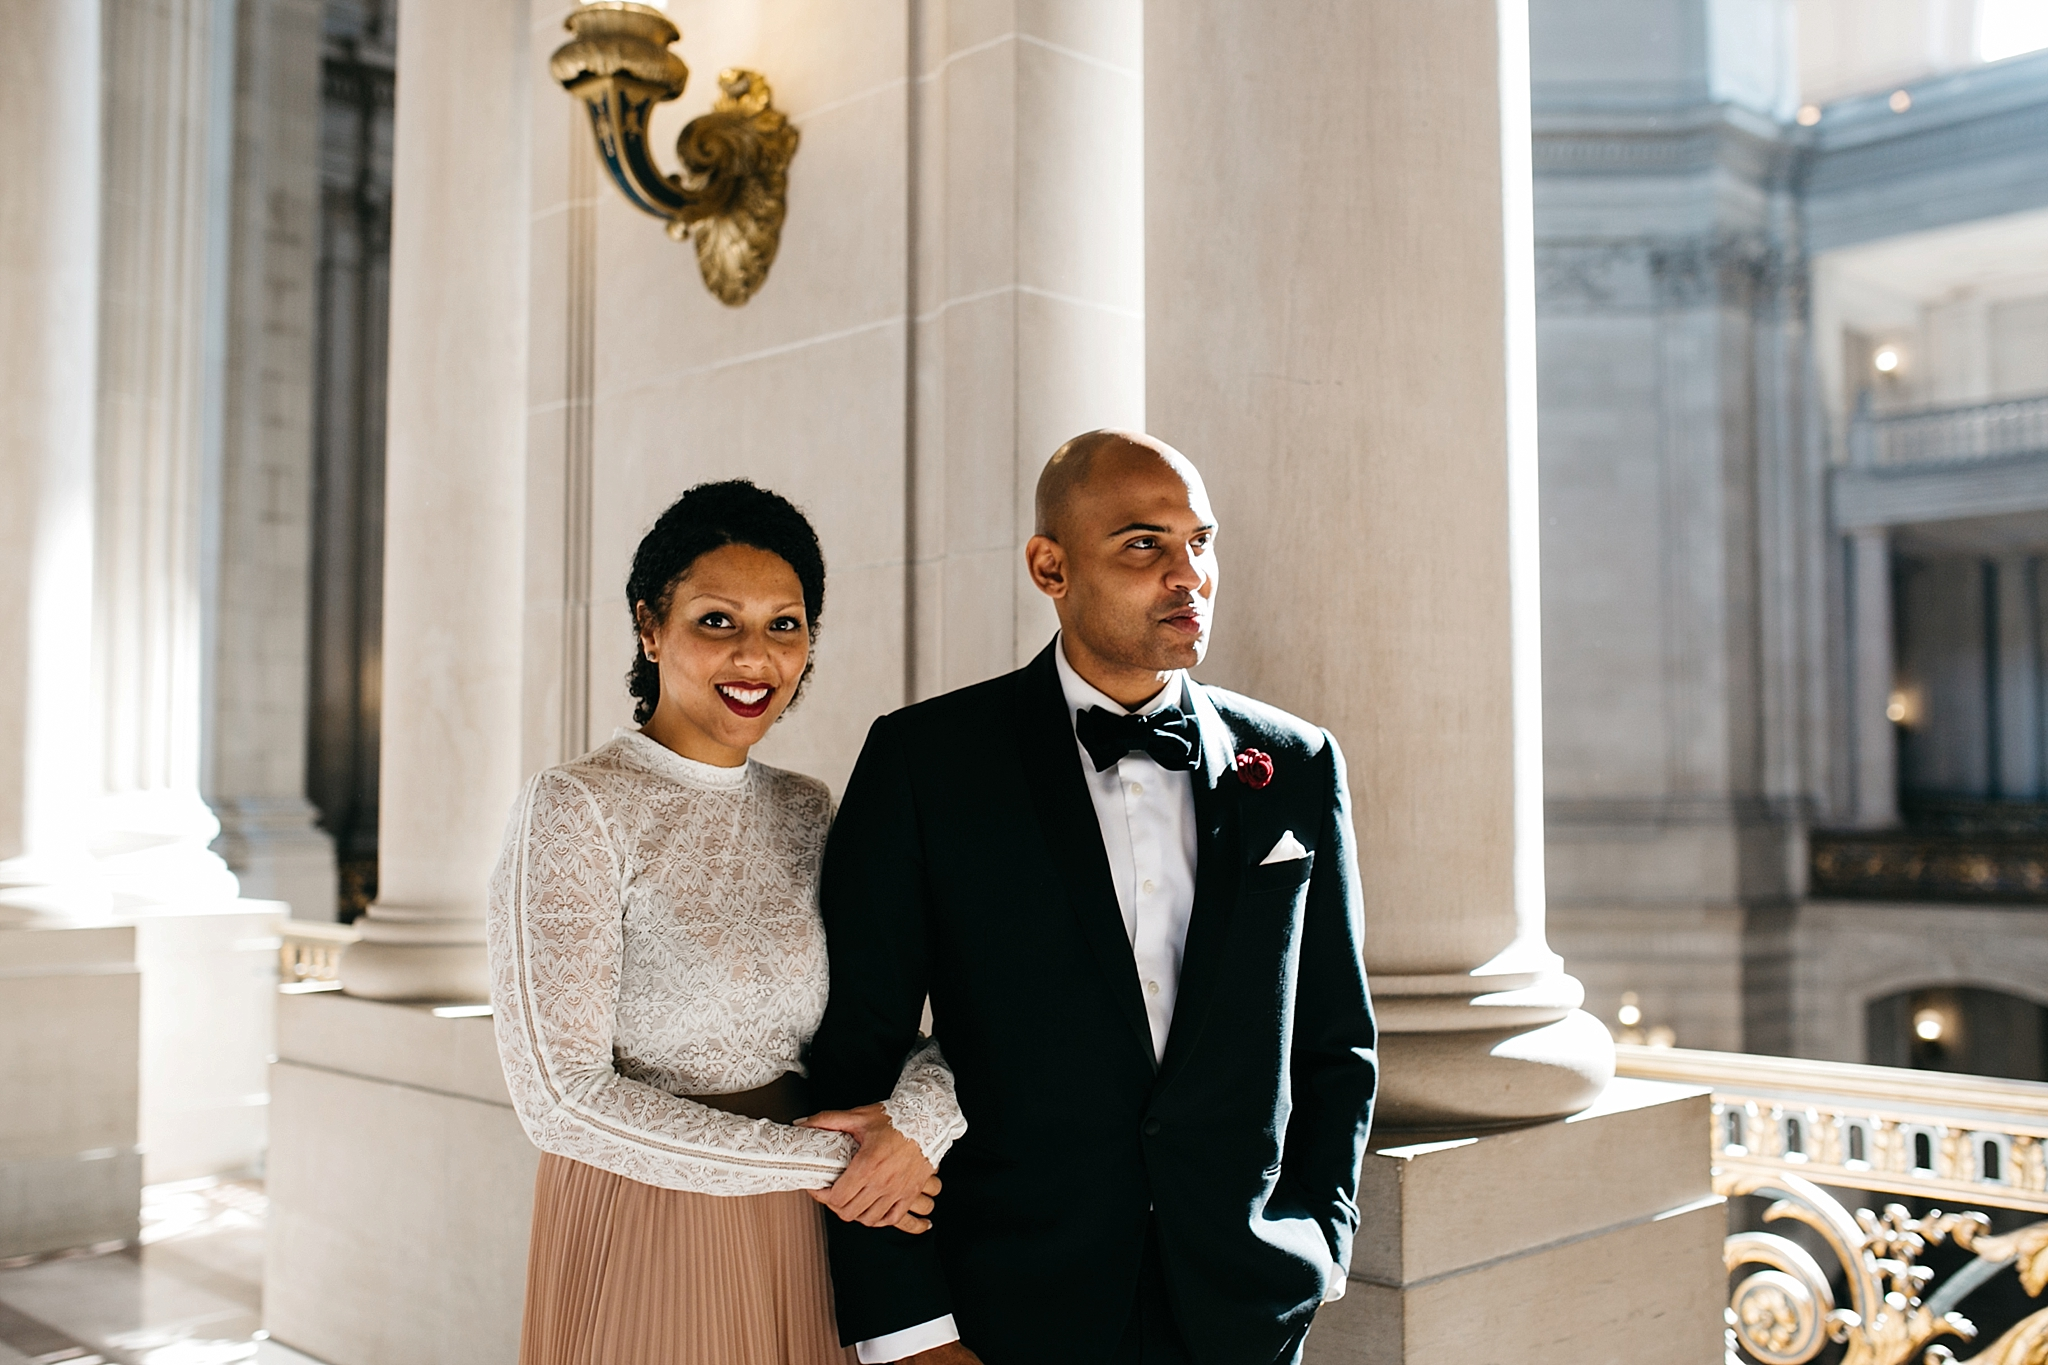 sf city hall elopement // San Francisco city hall wedding photographer // sf city hall elopement photographer // sf city hall wedding // sf elopement photographer